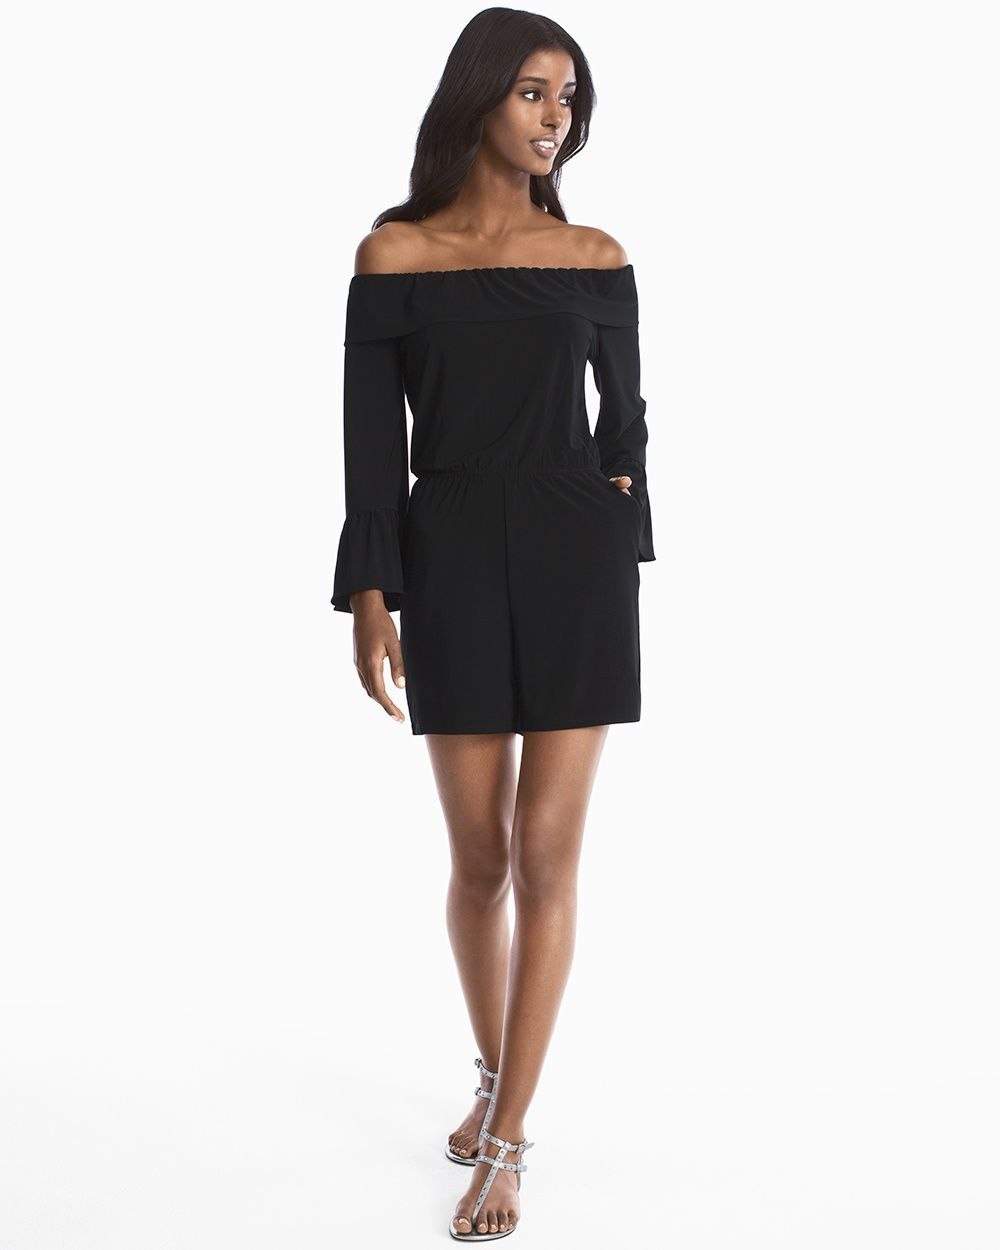 367e22082874 Women s Off-the-Shoulder Black Romper by WHBM